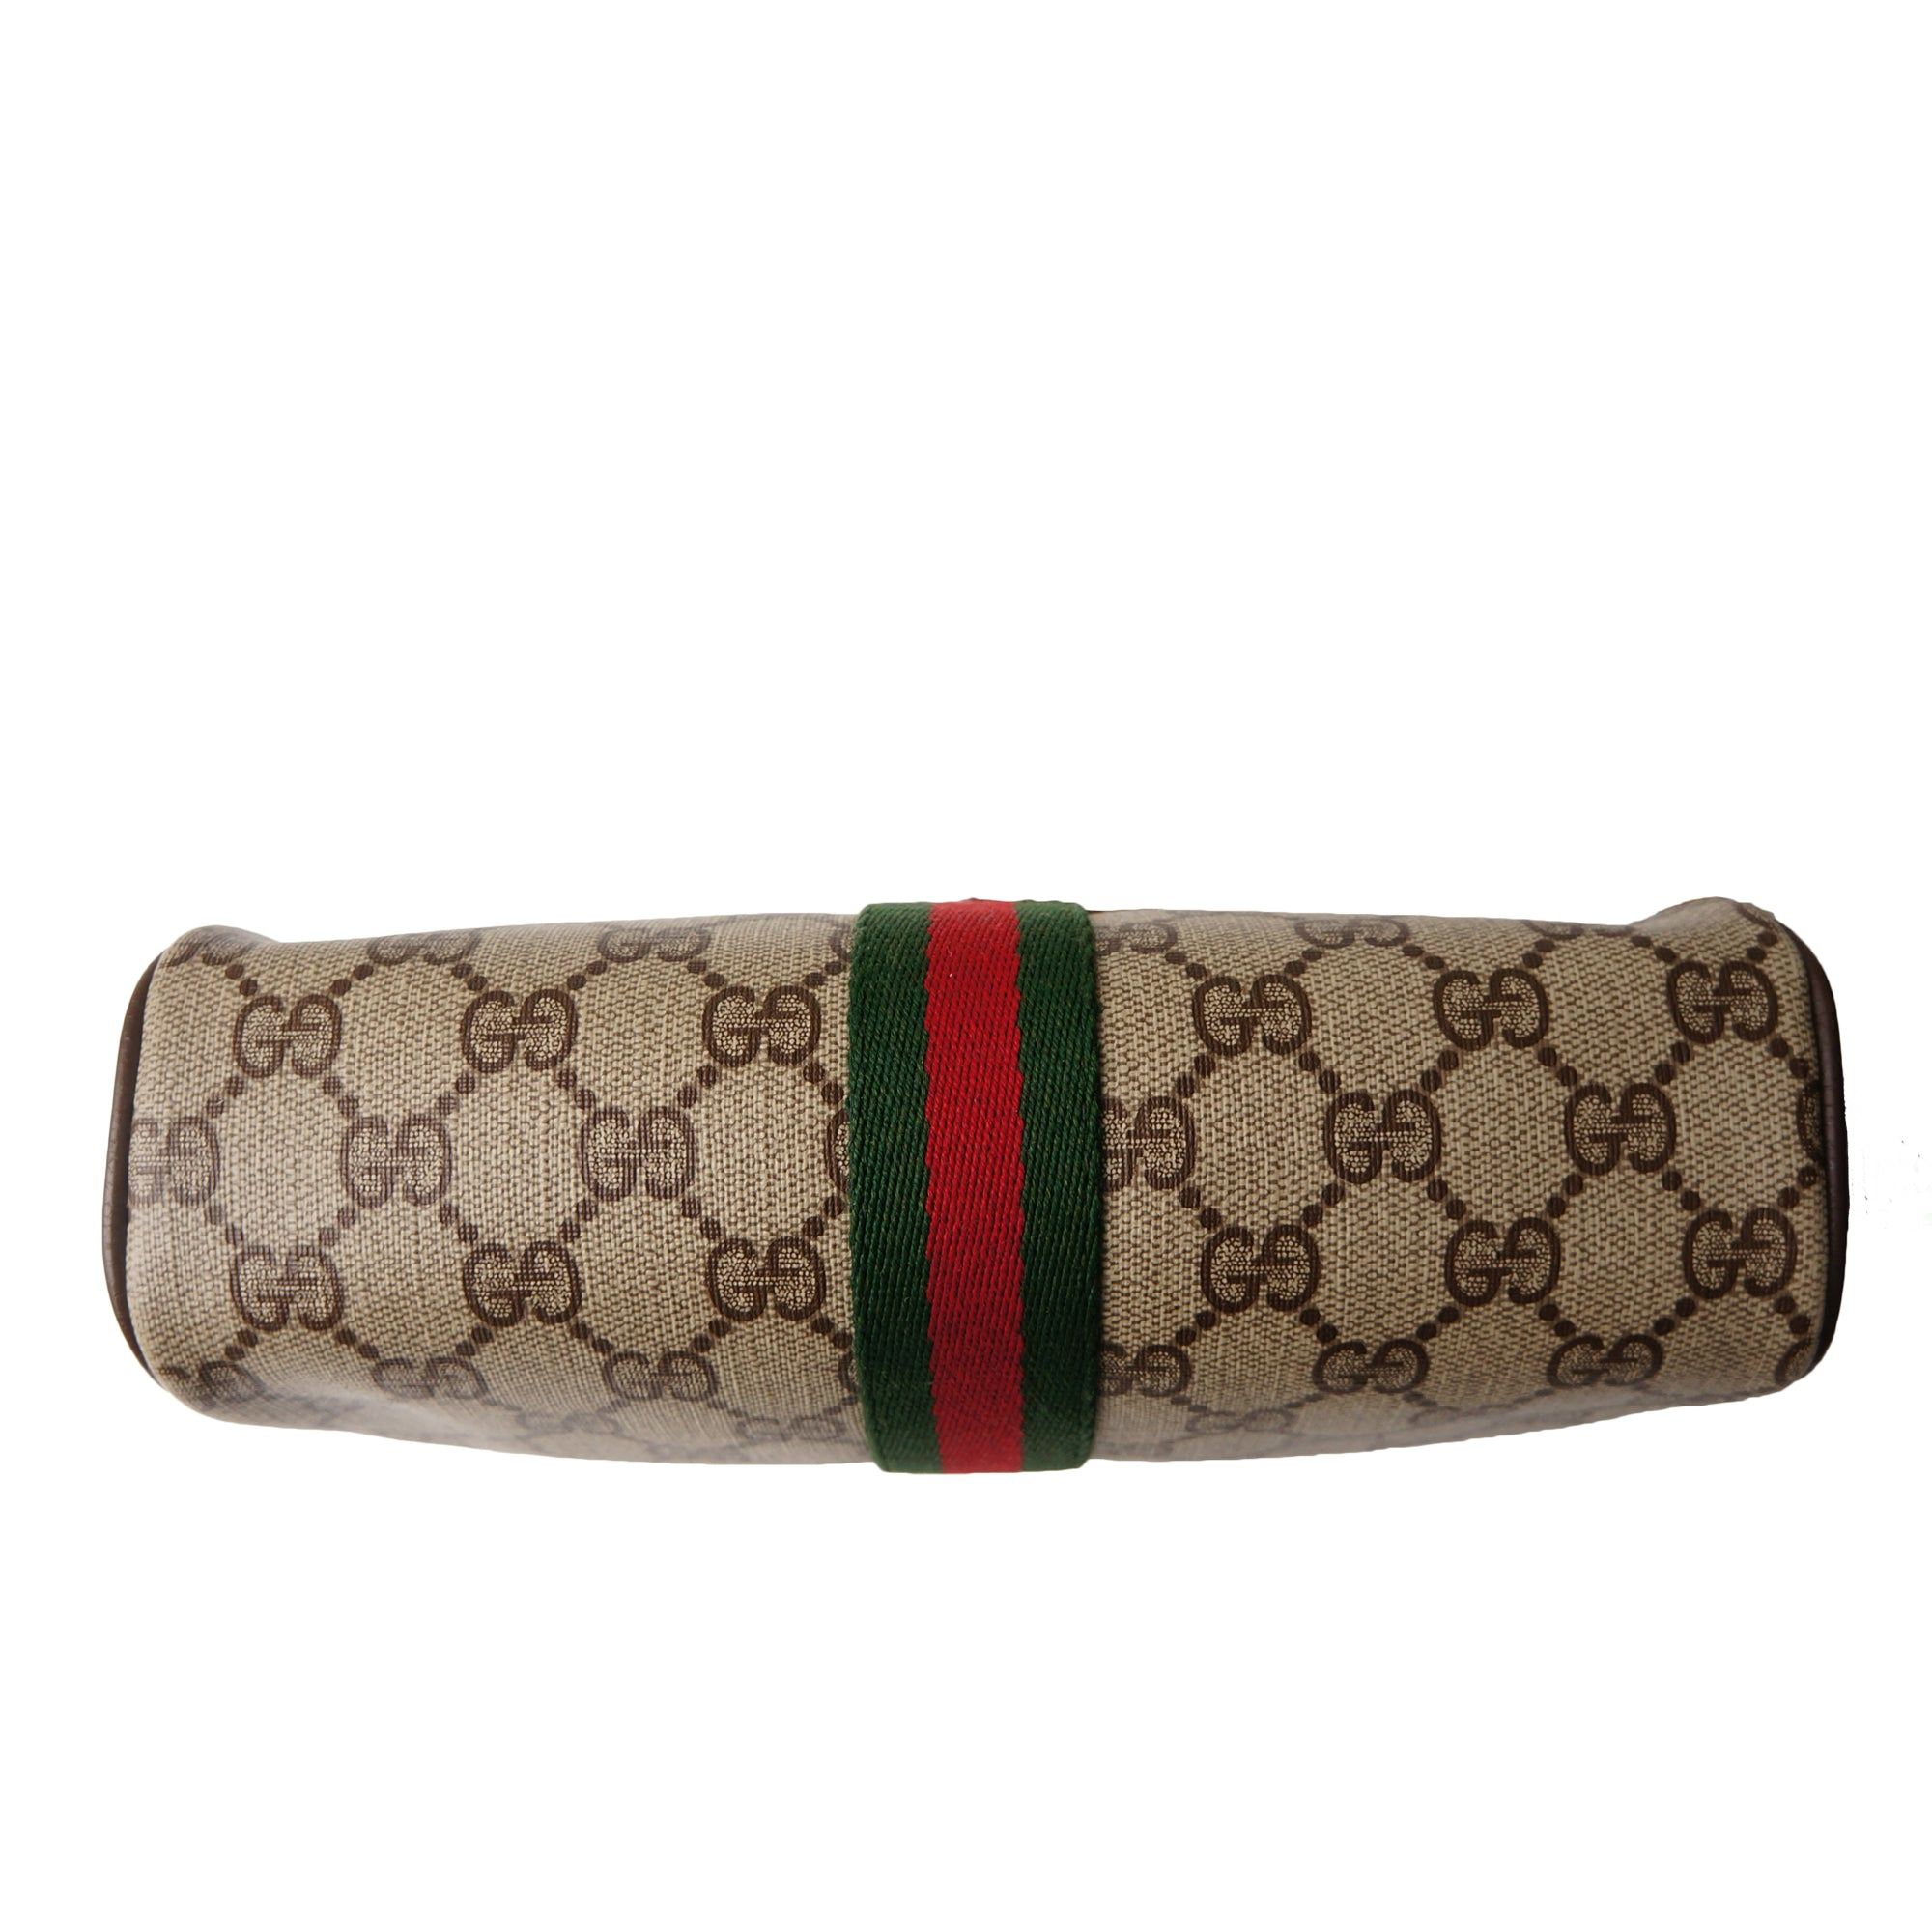 9cf5b5b0b803 ... GUCCI GG SUPREME WEB CROSSBODY BAG Shop online the best value on authentic  designer used preowned ...